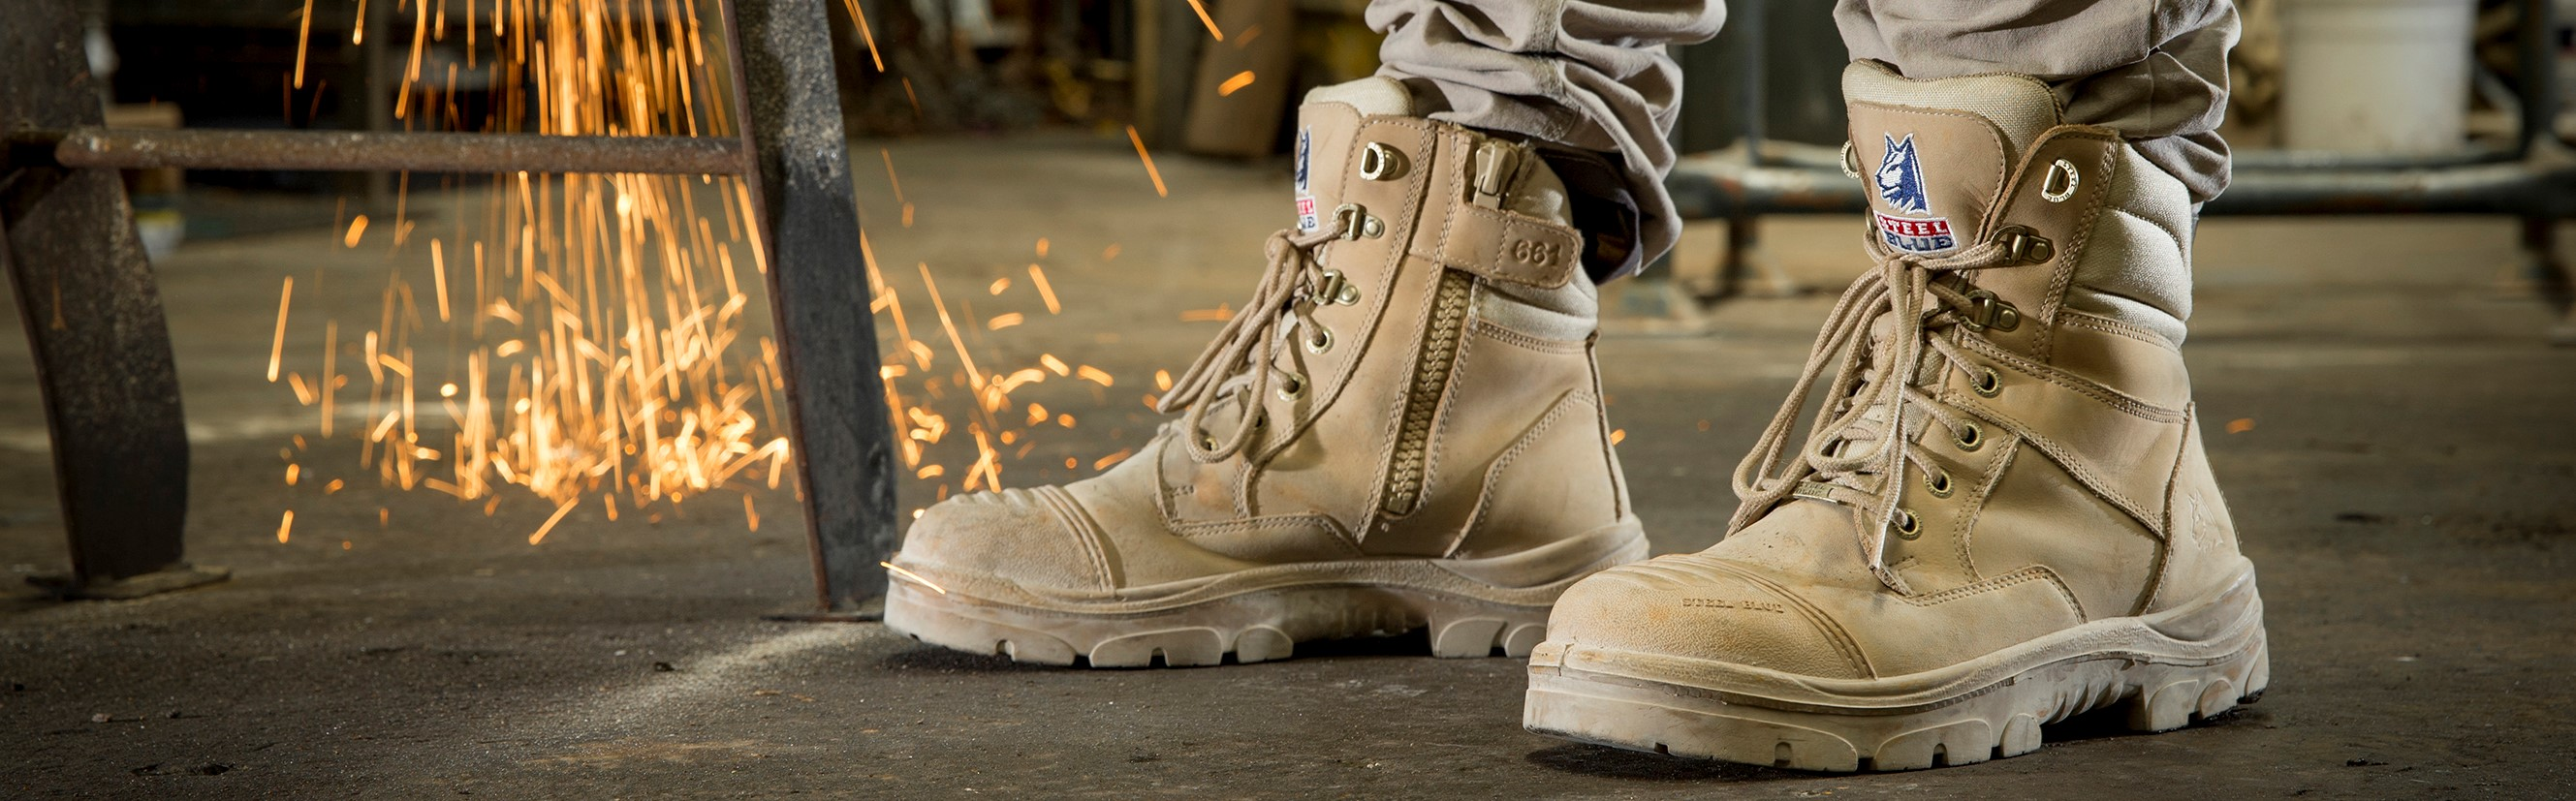 best work boots for being on feet all day